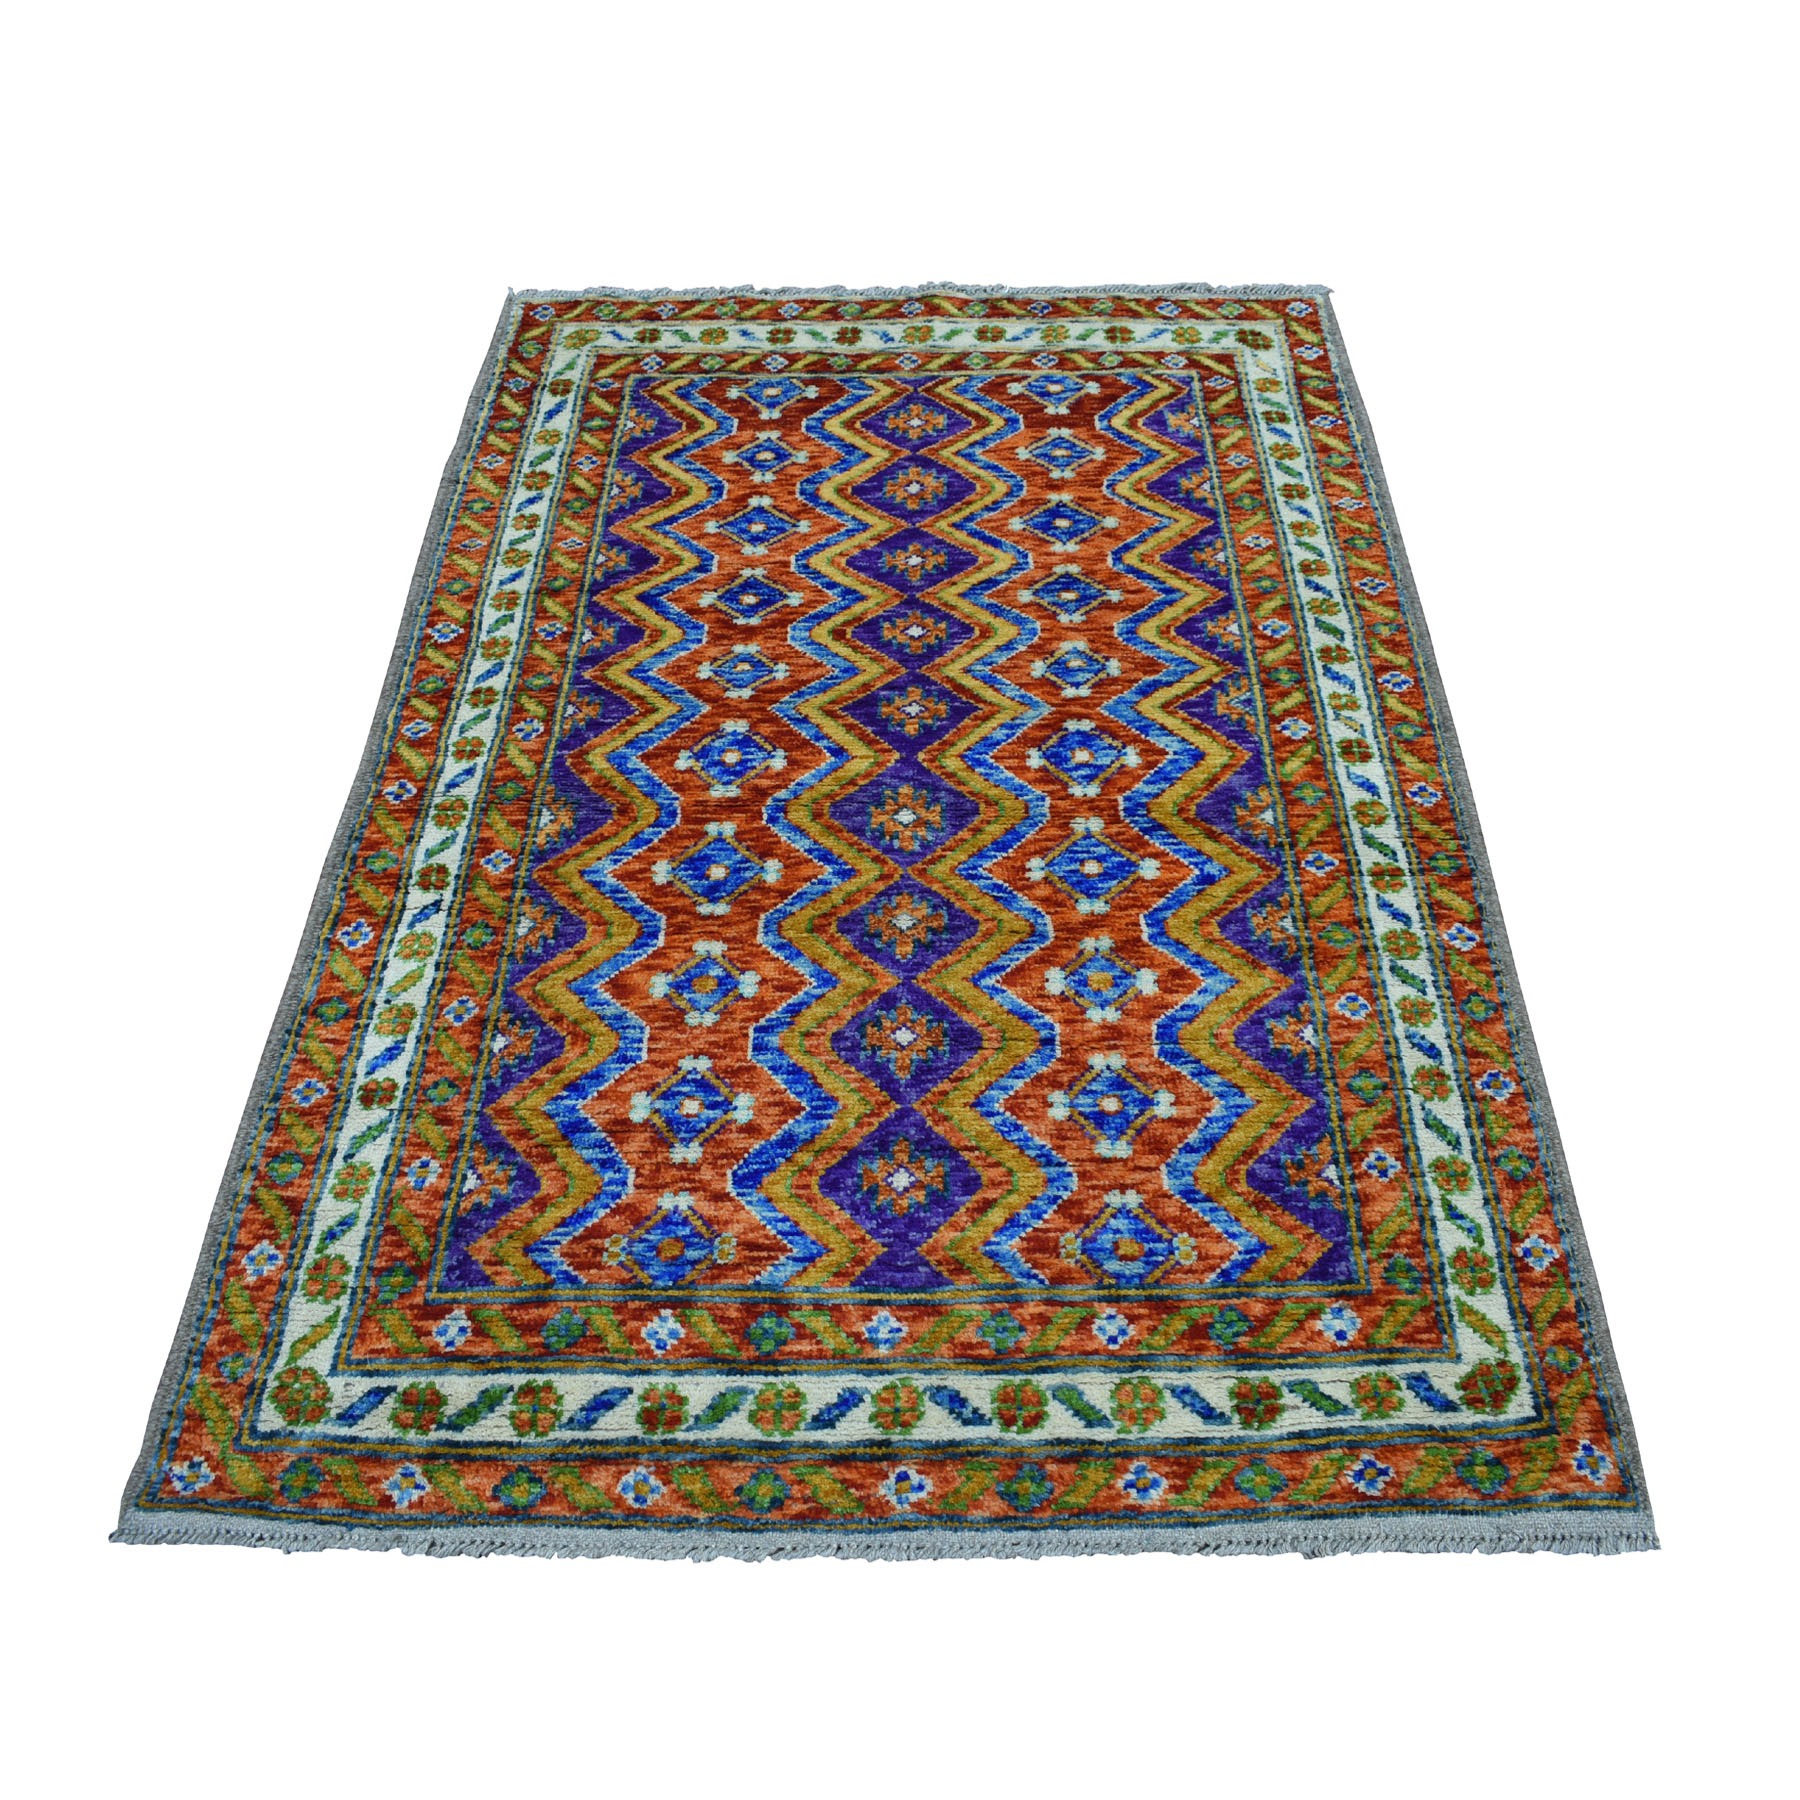 "4'x5'10"" Orange Colorful Afghan Baluch Tribal Design Hand Woven Pure Wool Oriental Rug"